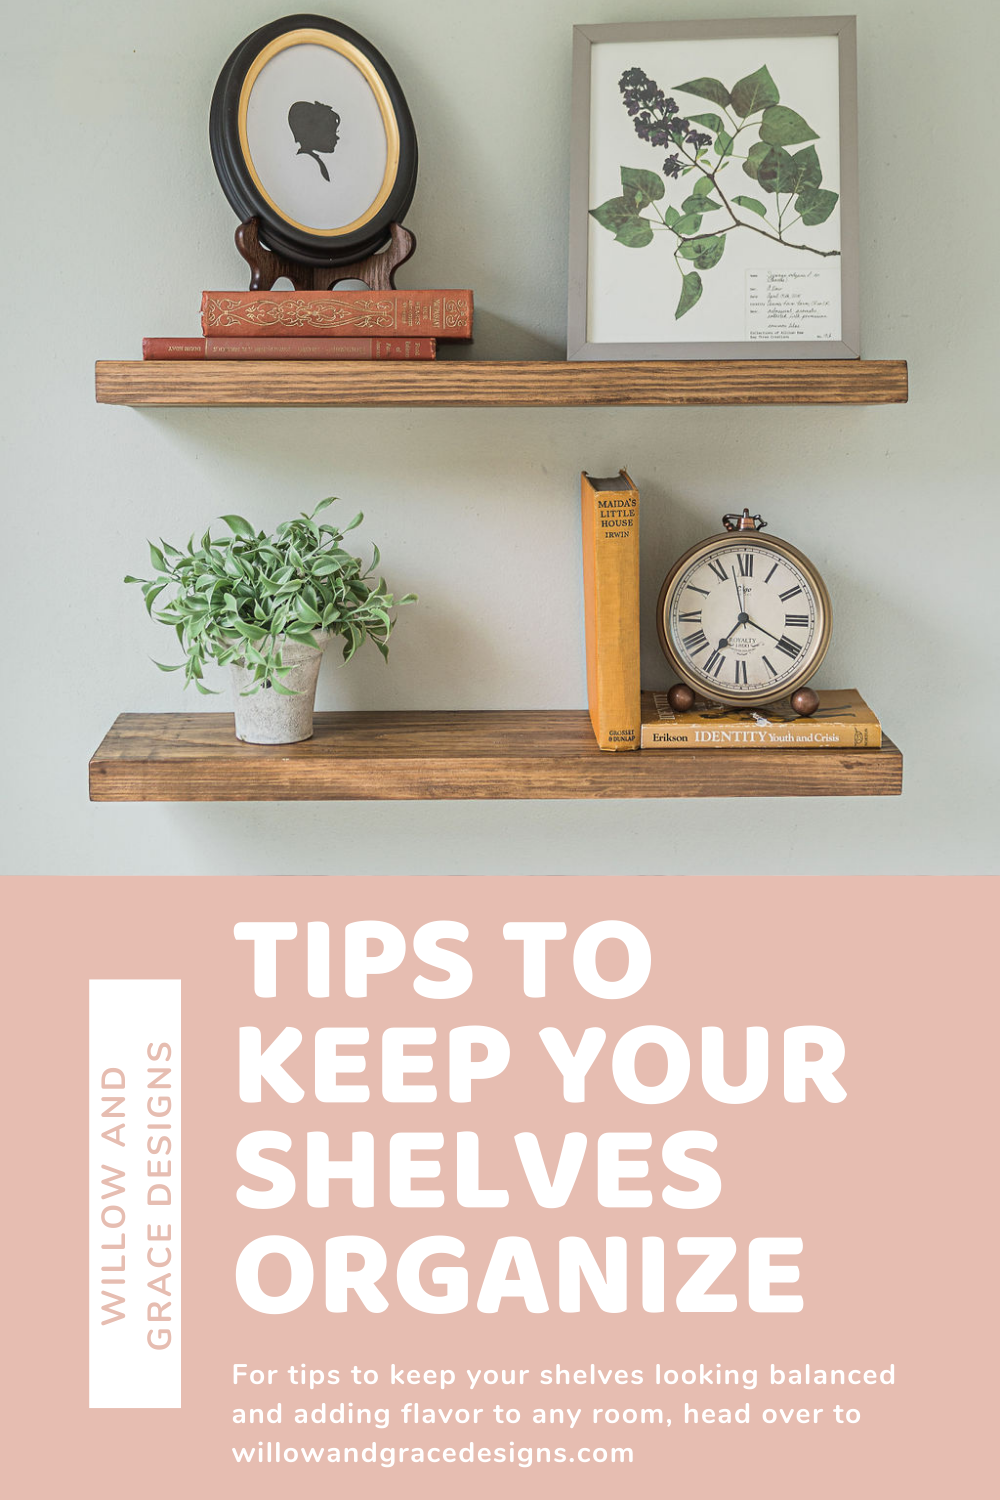 Tips To Keep Your Shelves Organized